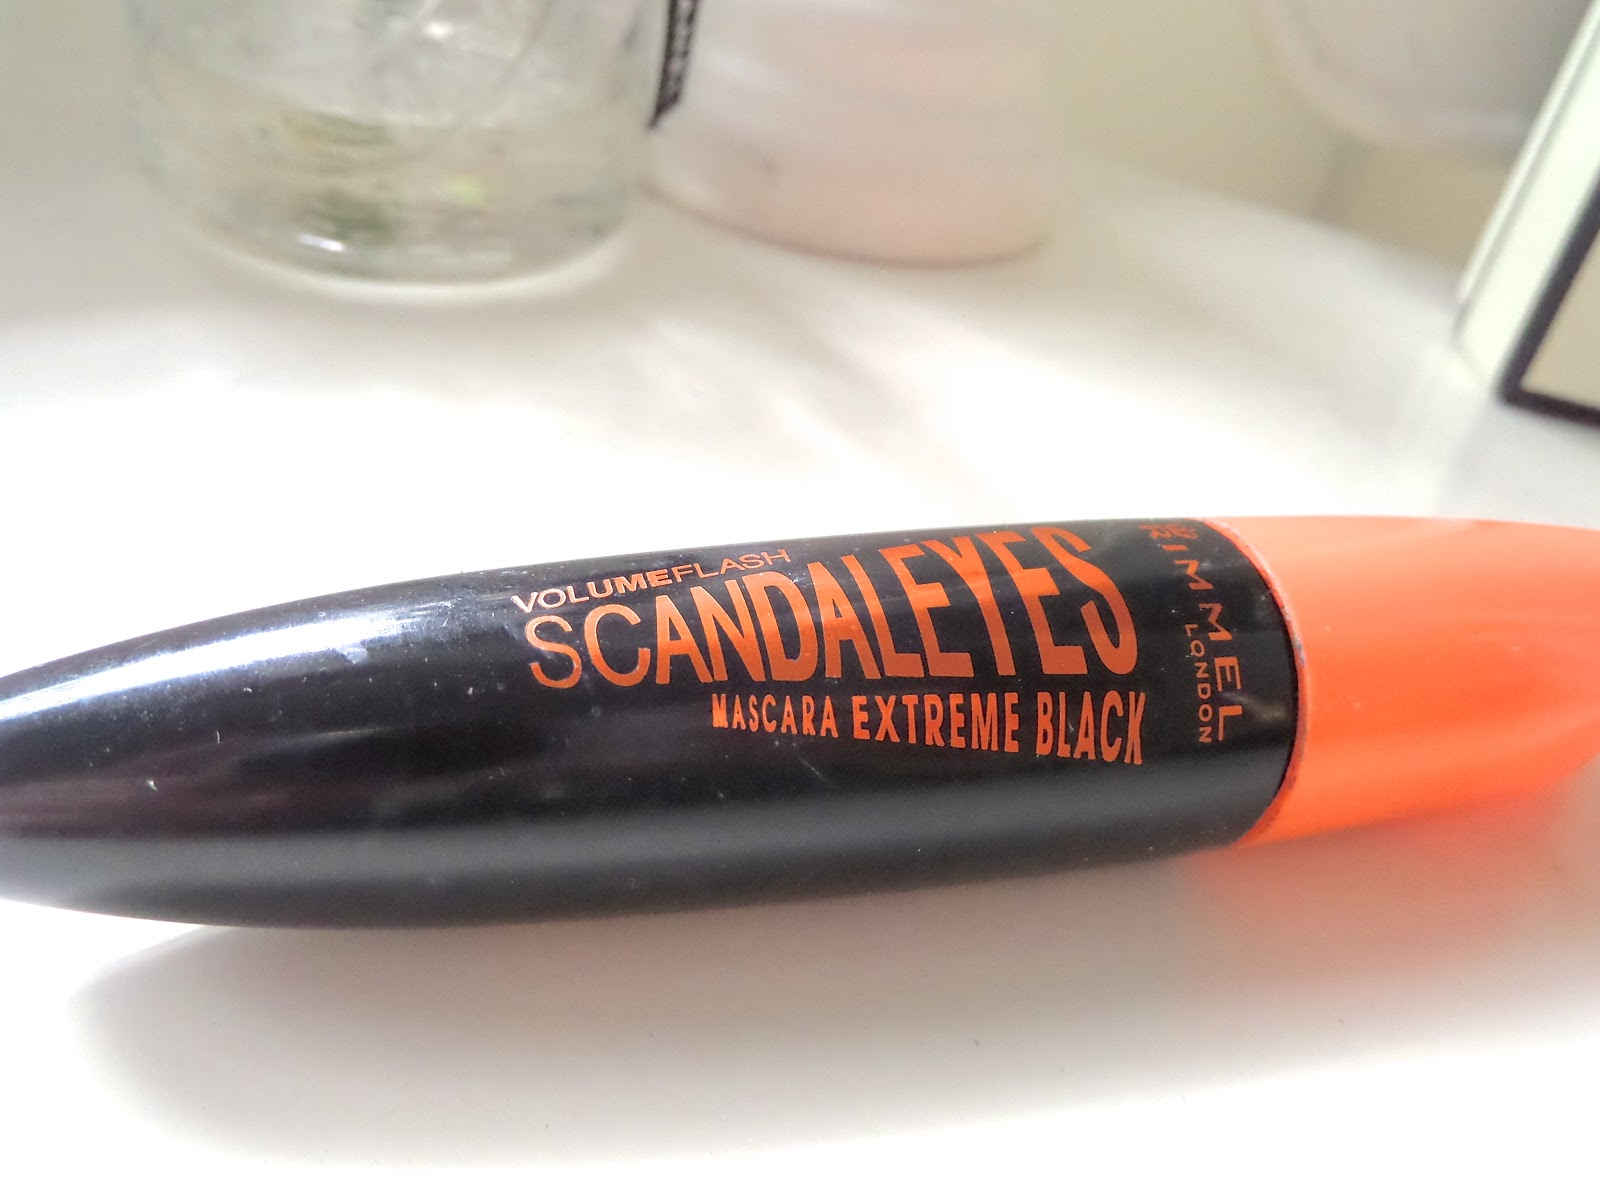 Rimmel ScandalEyes Mascara Extreme Black Review